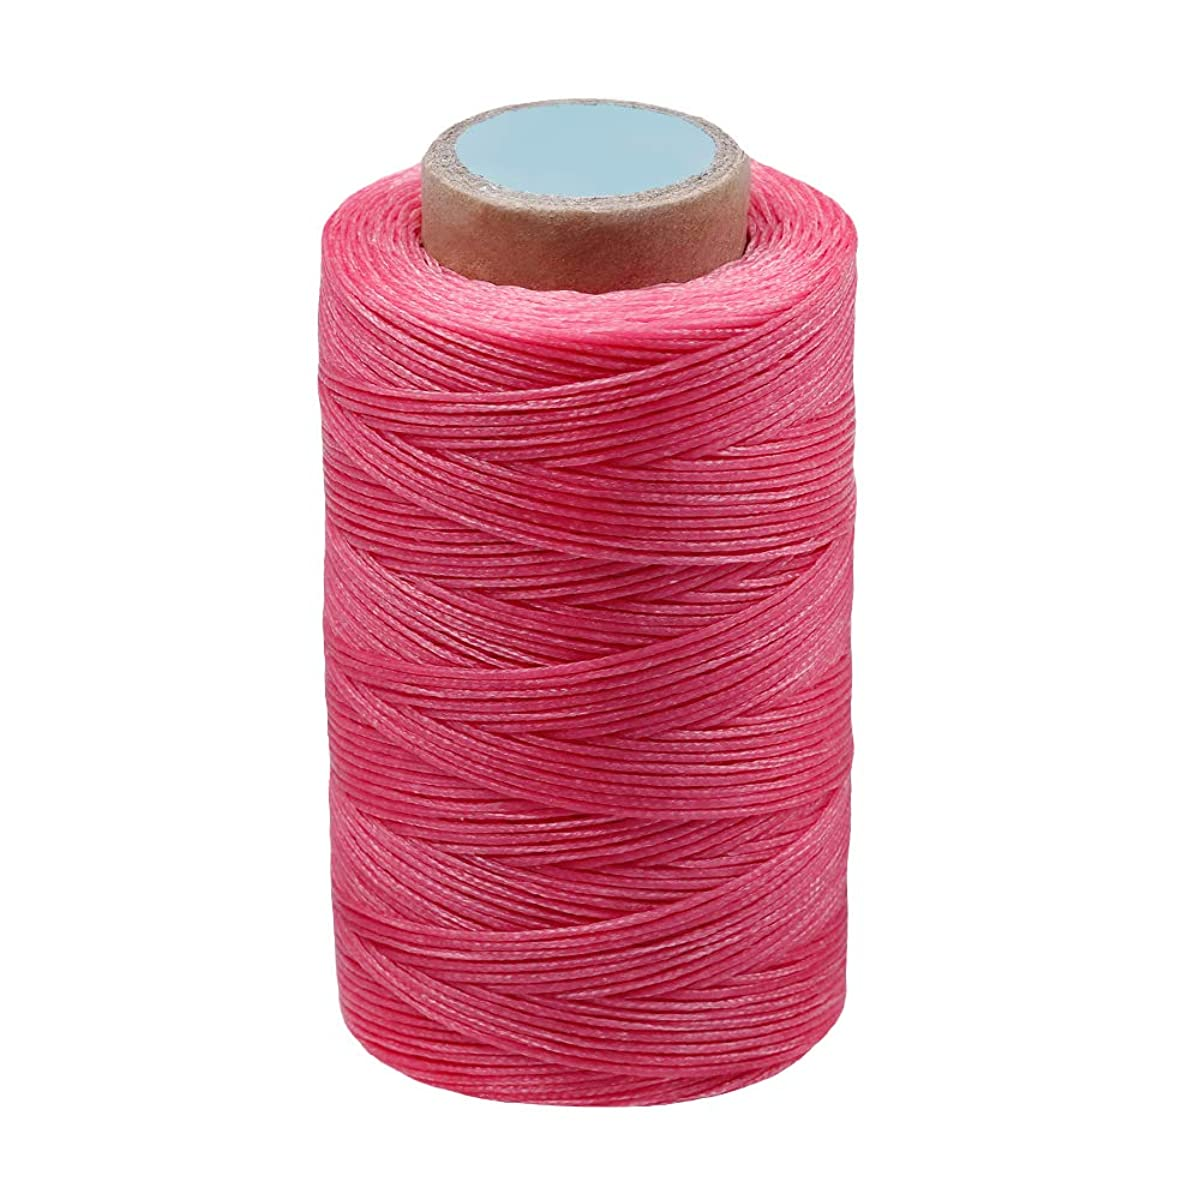 MIUSIE Colorful 284Yards Leather Sewing Waxed Thread-Practical Long Stitching Thread for Leather Craft DIY/Bookbinding/Shoe Repairing/Leather Projects